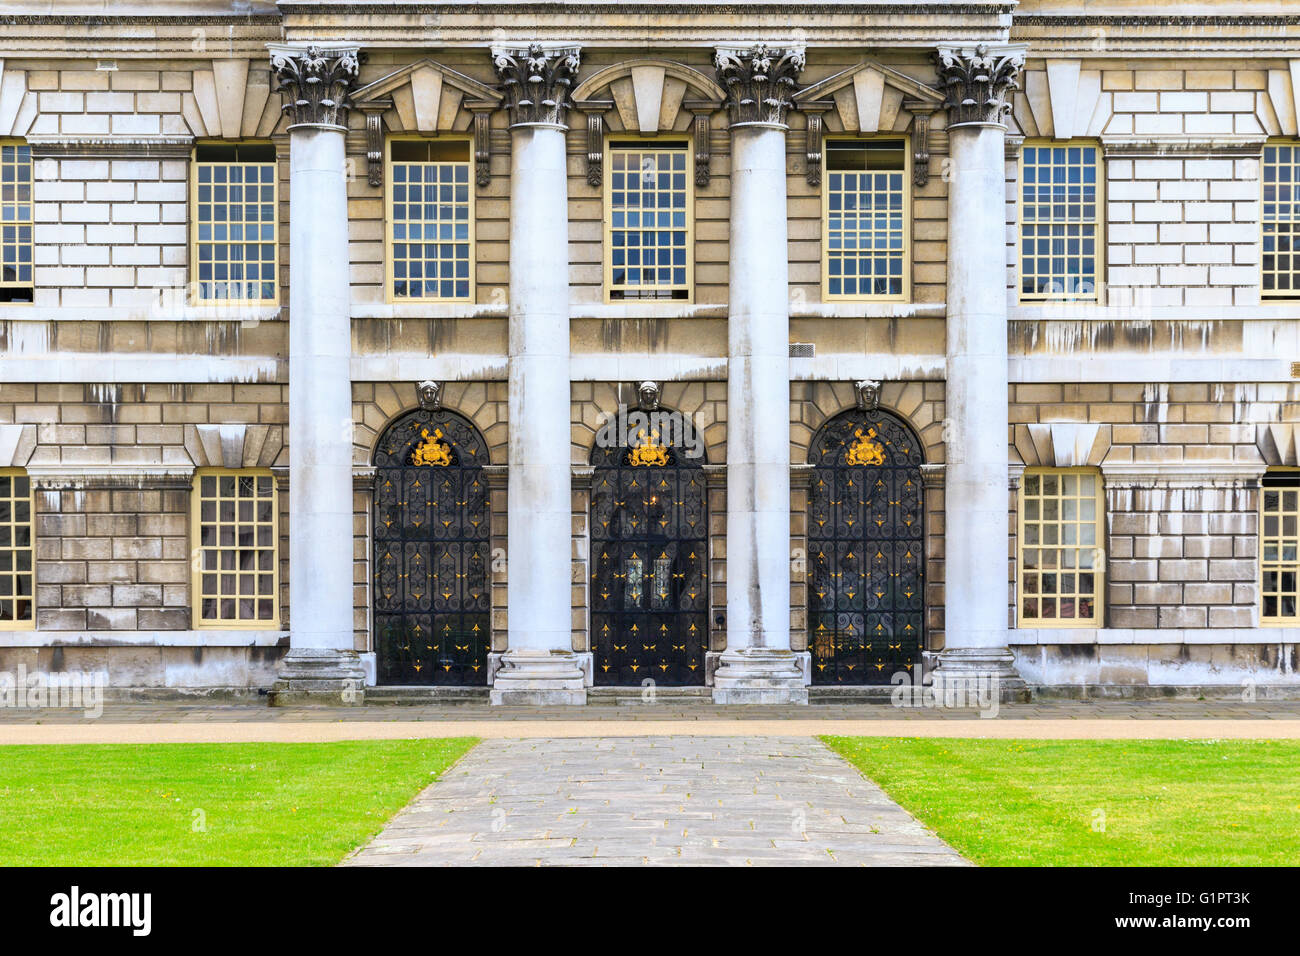 Entrance of Trinity Laban Conservatoire Of Music and Dance in University of Greenwich, London - Stock Image